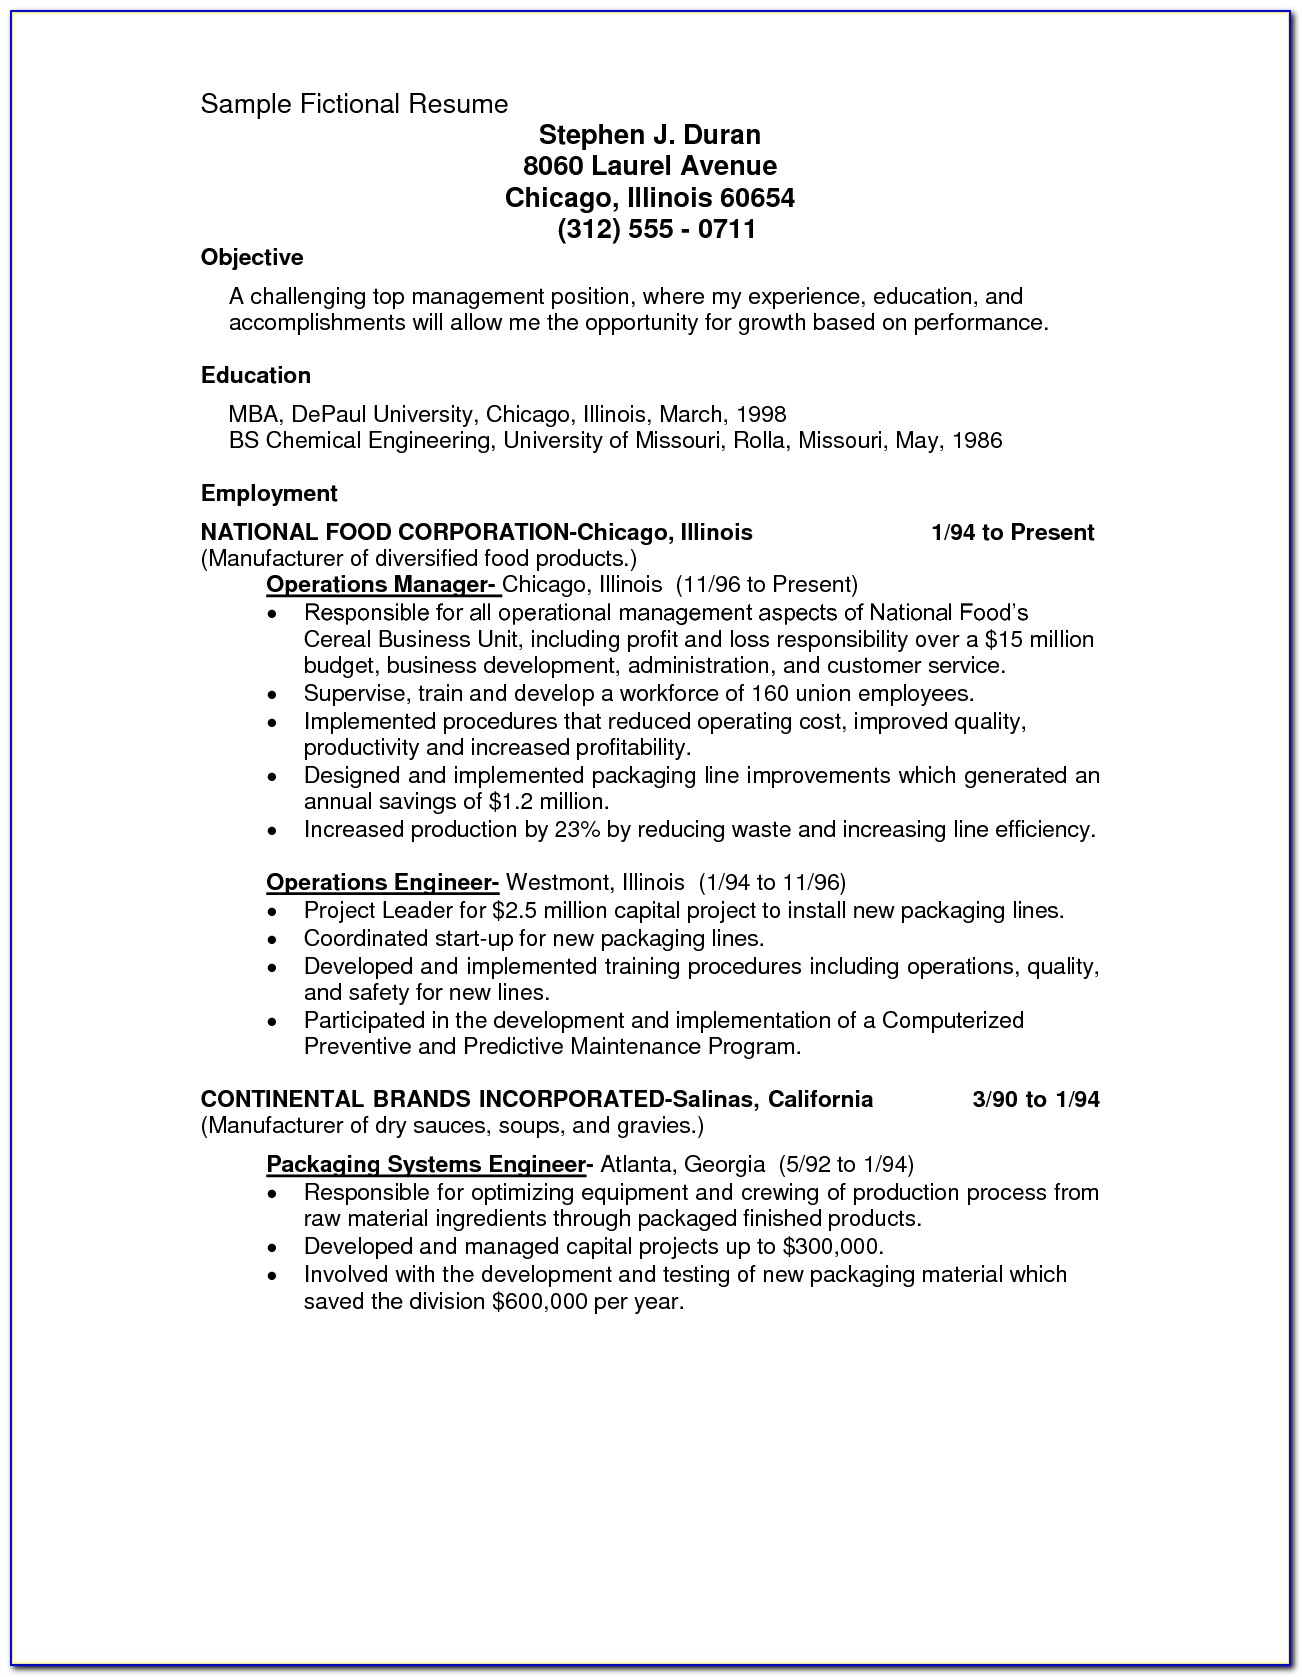 Resume Template For Journeyman Electrician